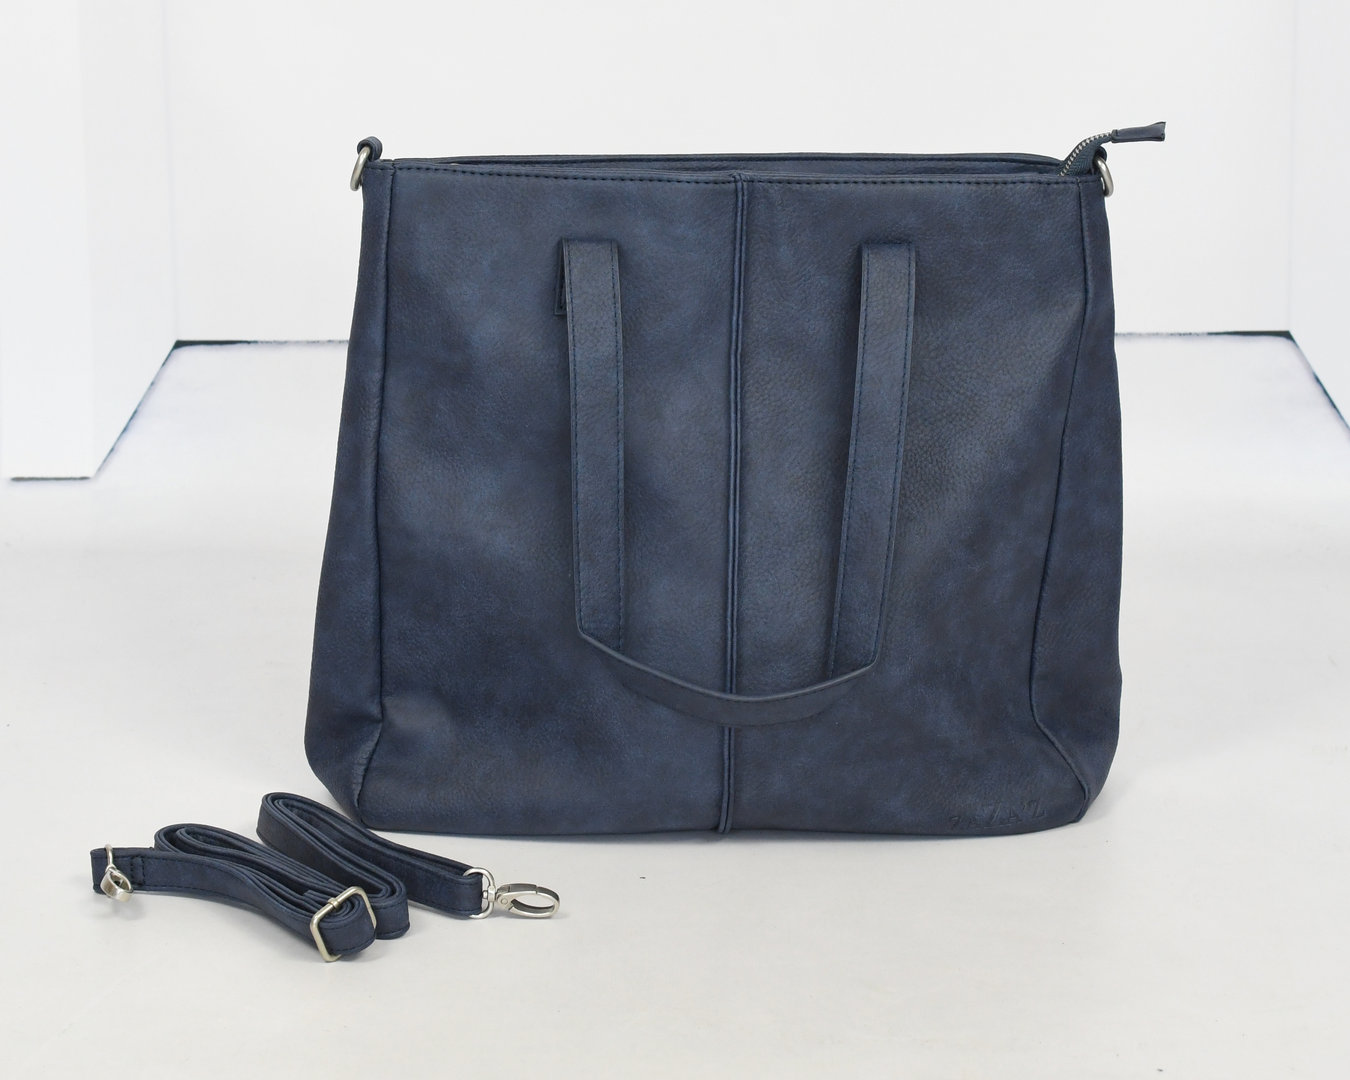 Shoppingtasche Madrid blau